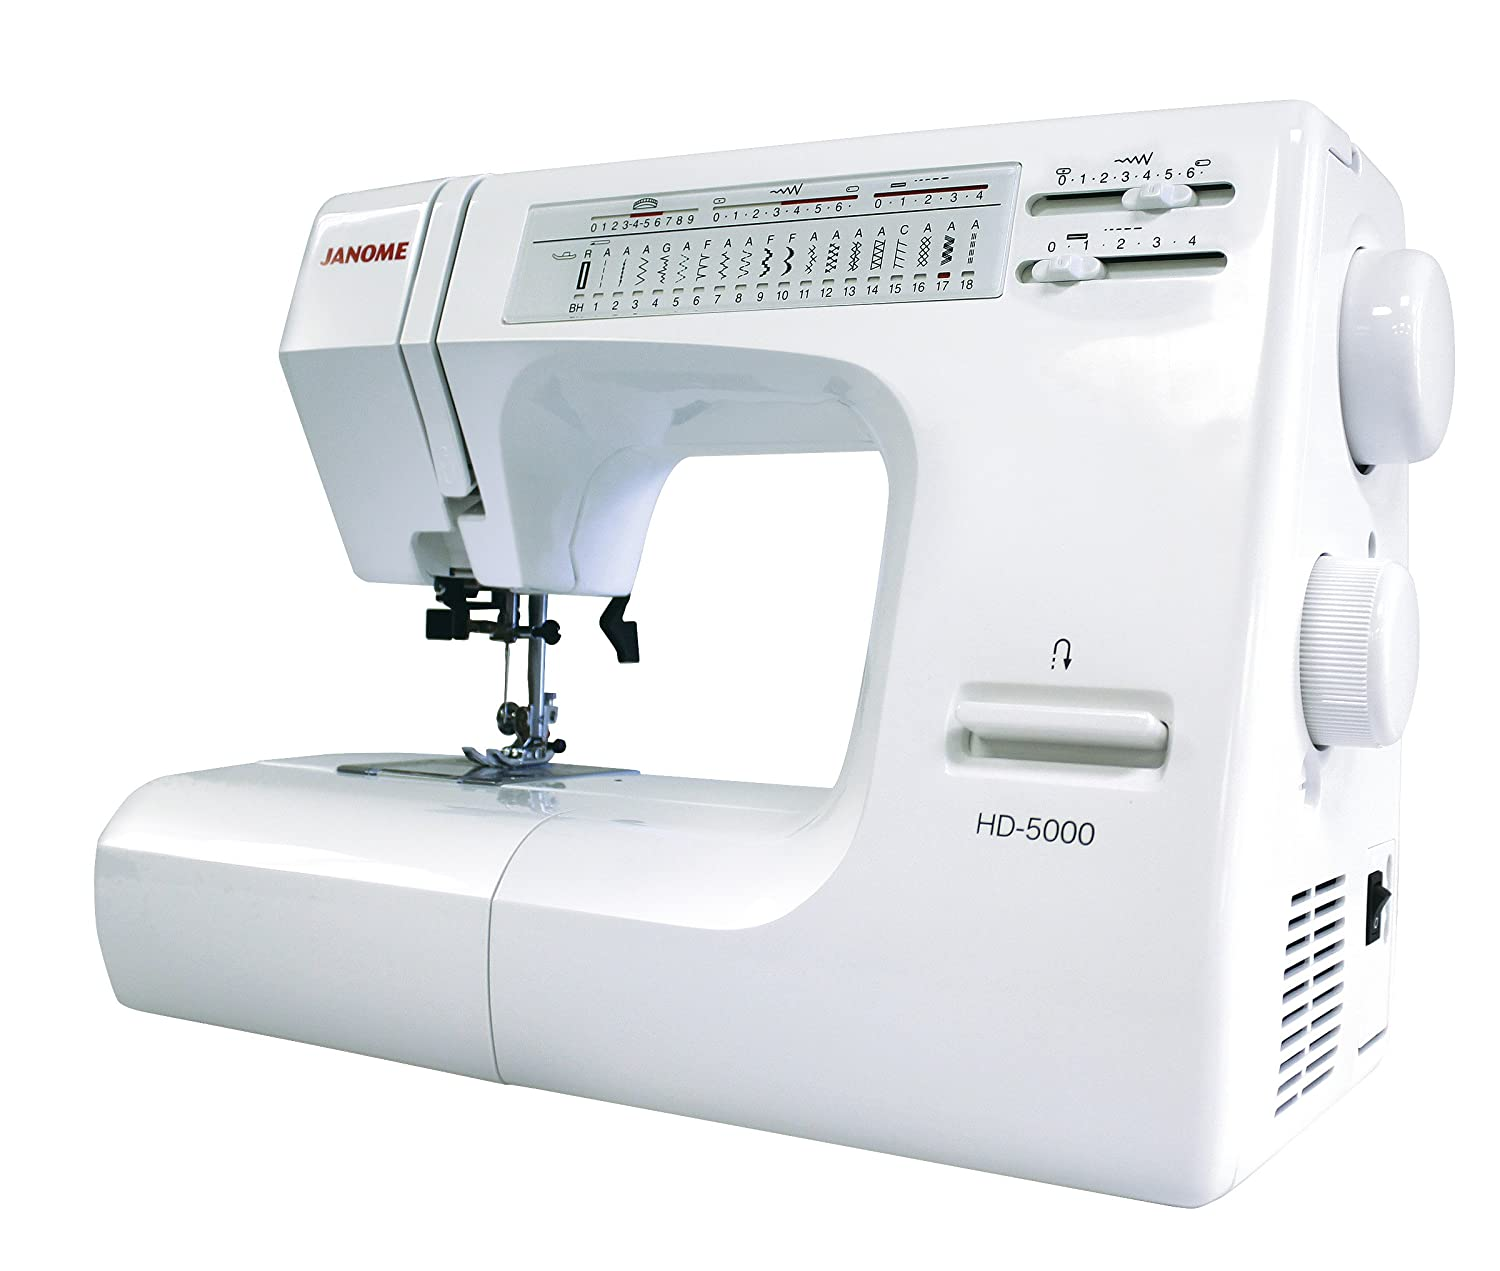 Janome memory craft 6500p - Janome Hd5000 Heavy Duty All Mechanical Sewing Machine With 18 Built In